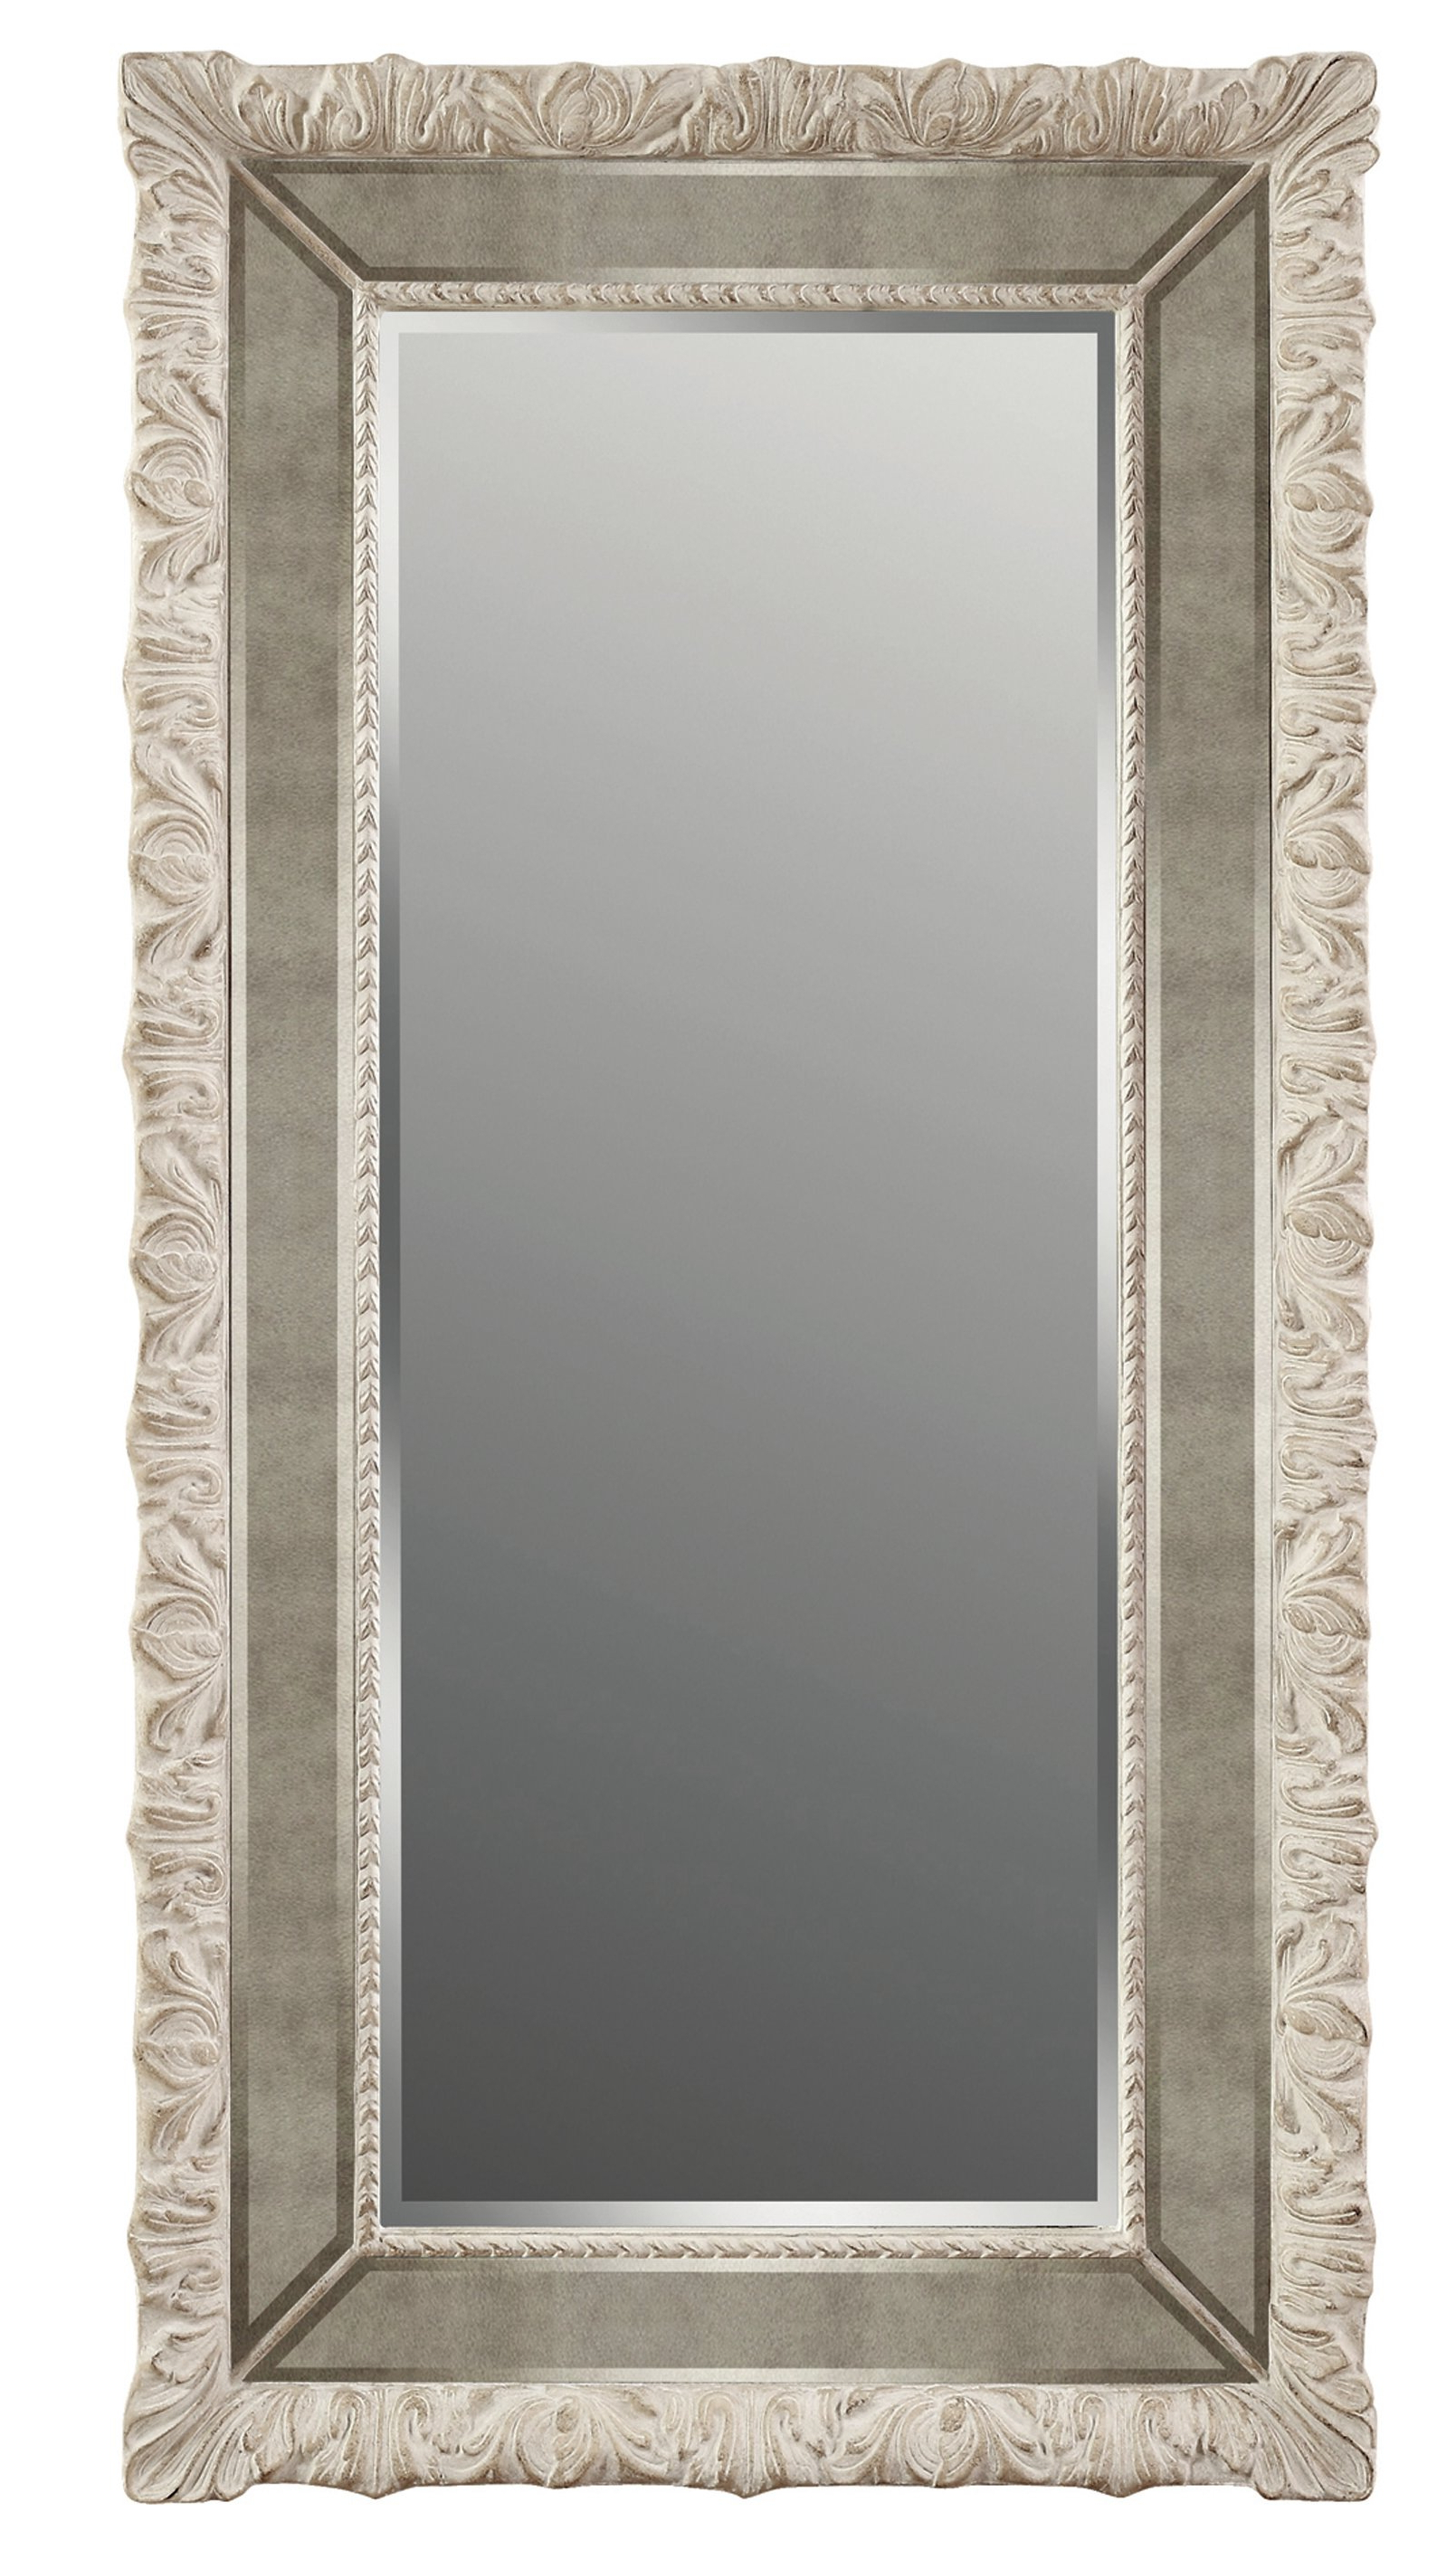 Gloria Full Length Floor Mirror Inside Fashionable Decorative Full Length Wall Mirrors (View 6 of 20)